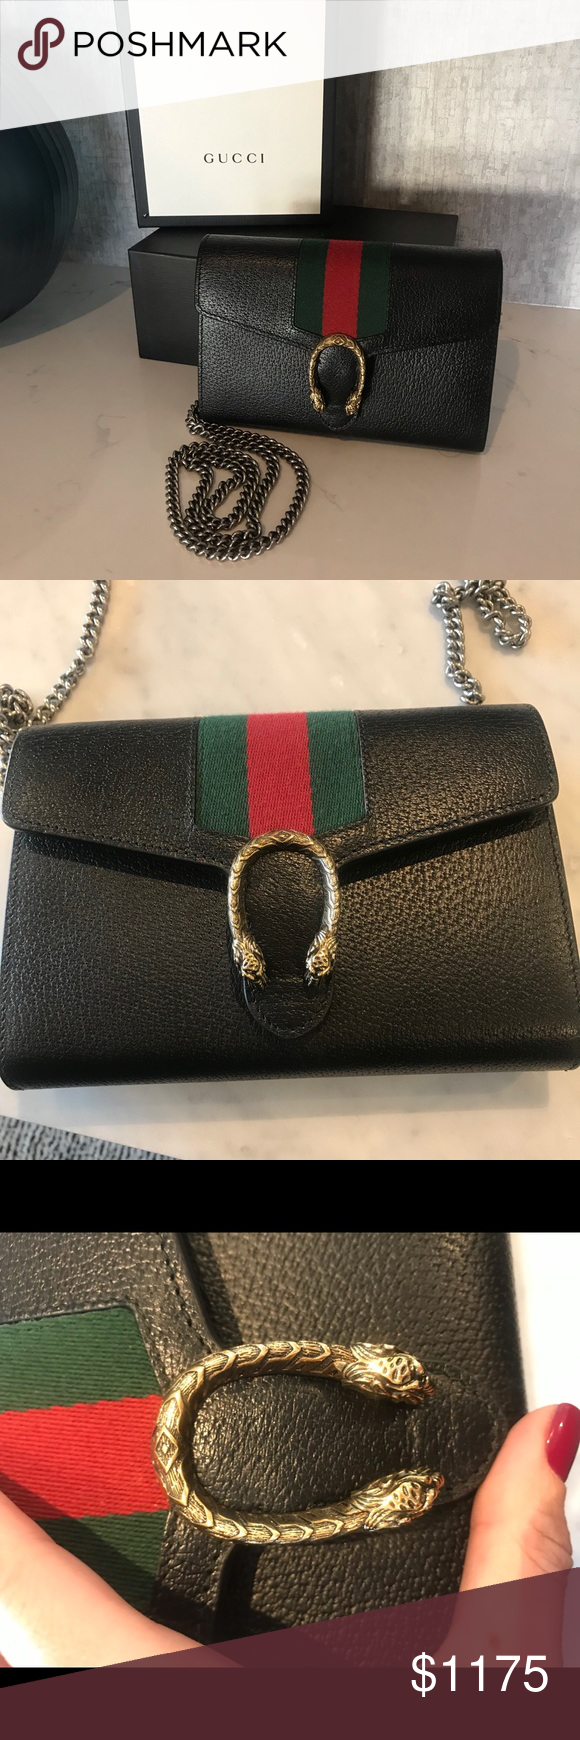 c7ace0b91d3 Gucci Dionysus web stripe leather WOC Gorgeous. Shows some basic wear from  carrying opening